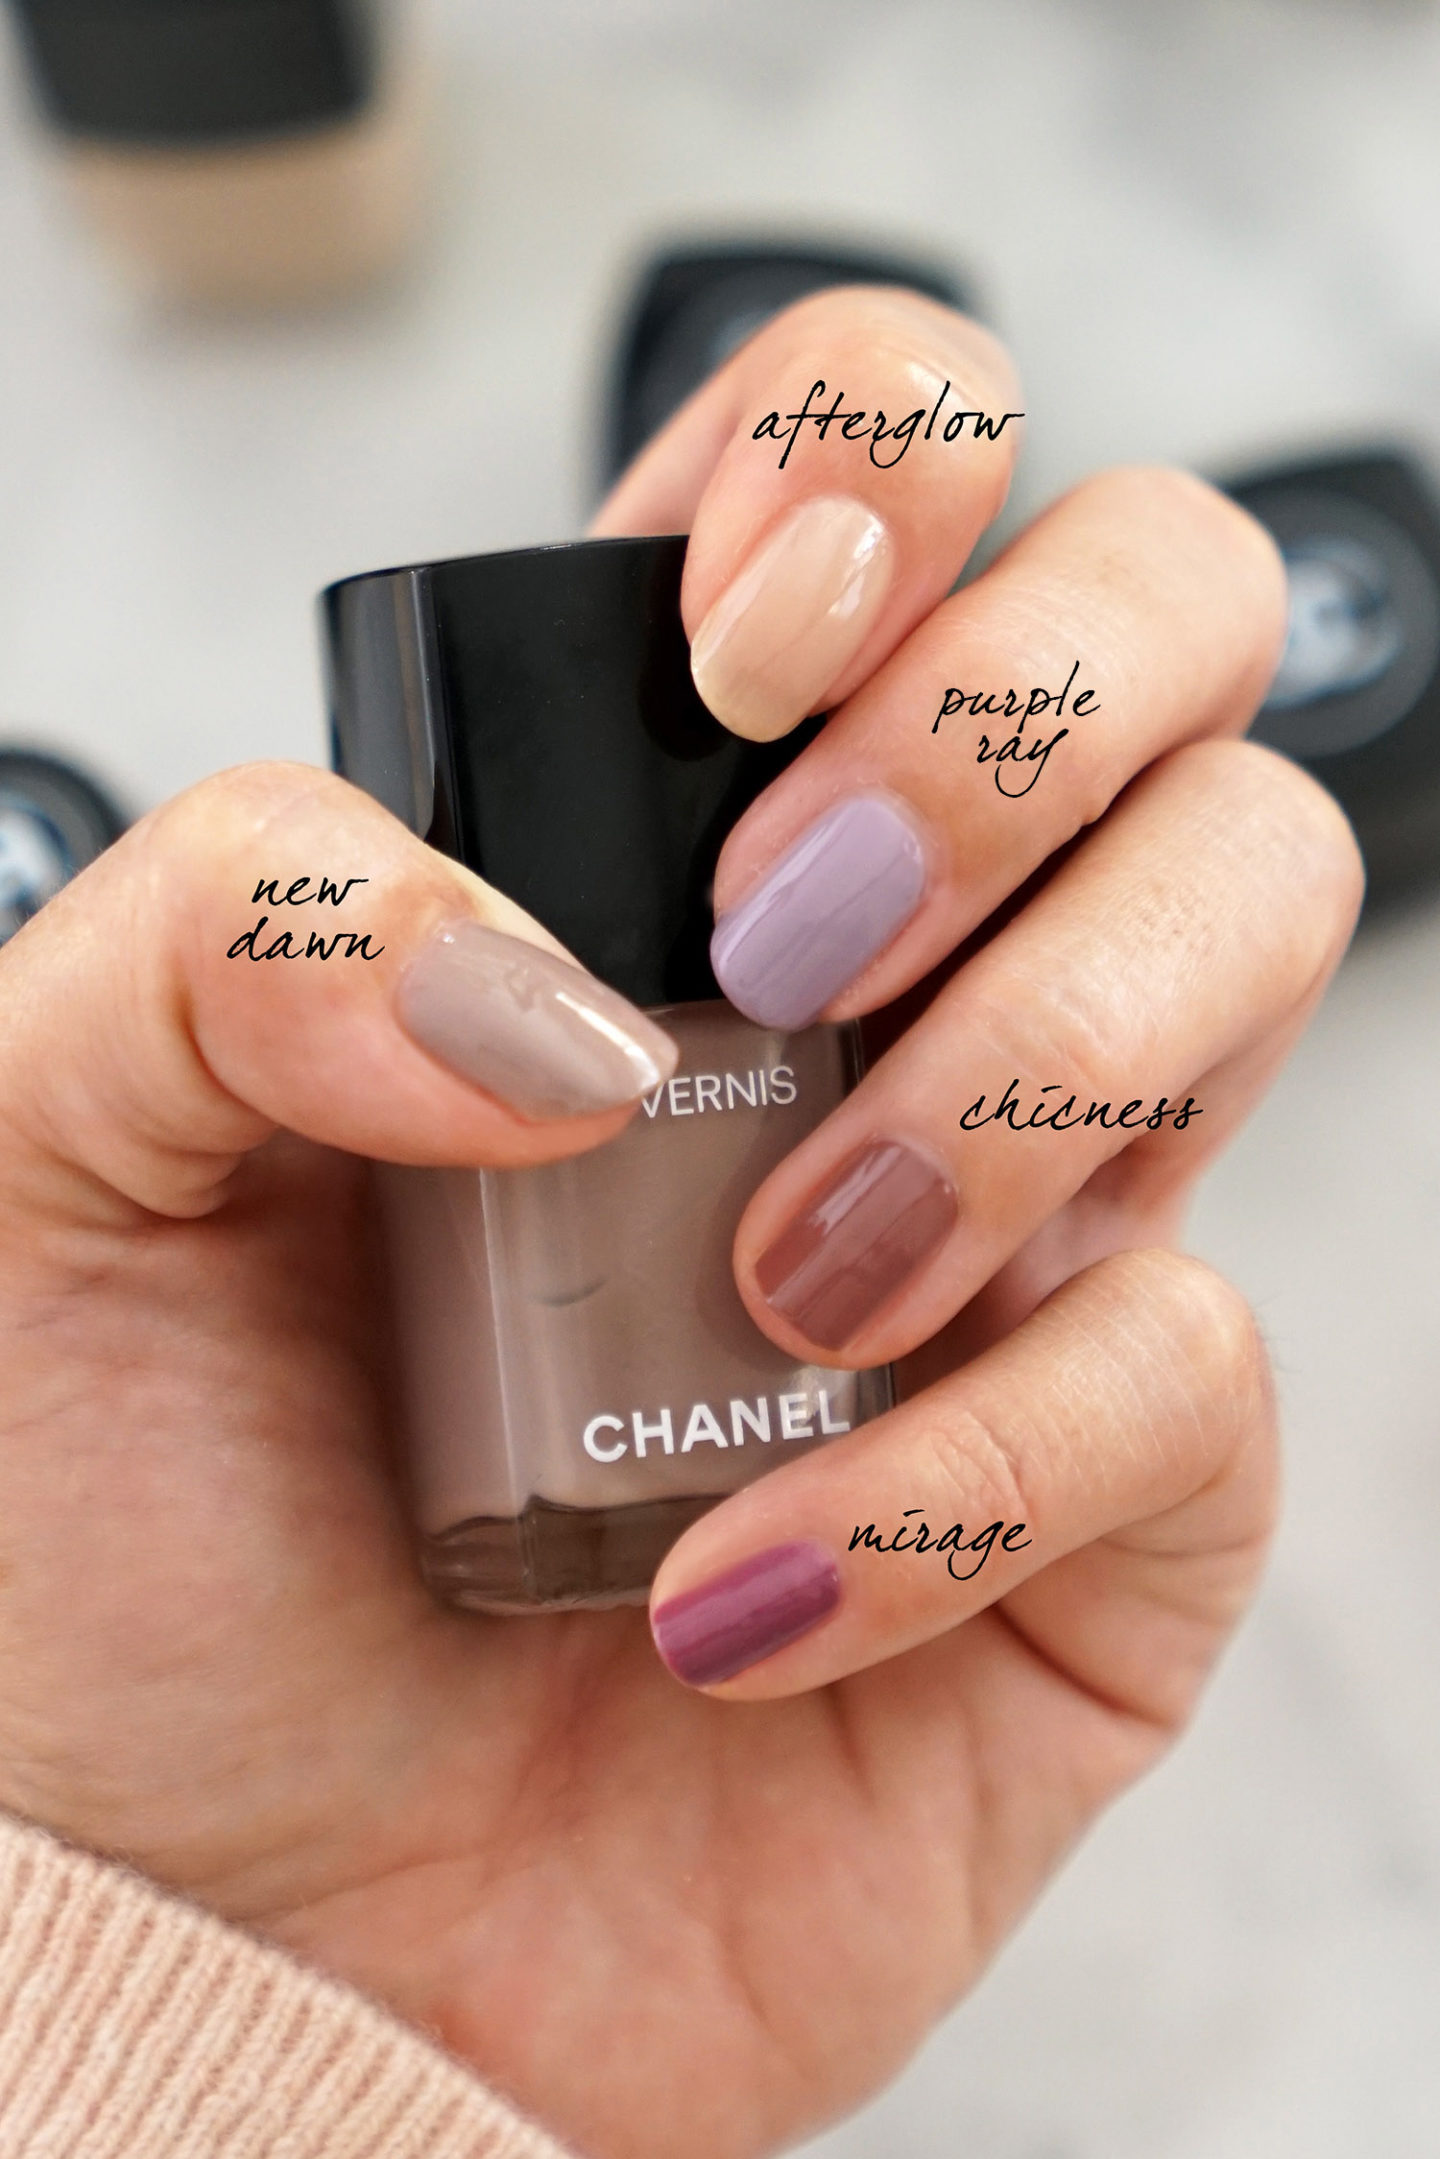 Chanel Le Vernis New Dawn, Afterglow, Purple Ray, Chicness et Mirage